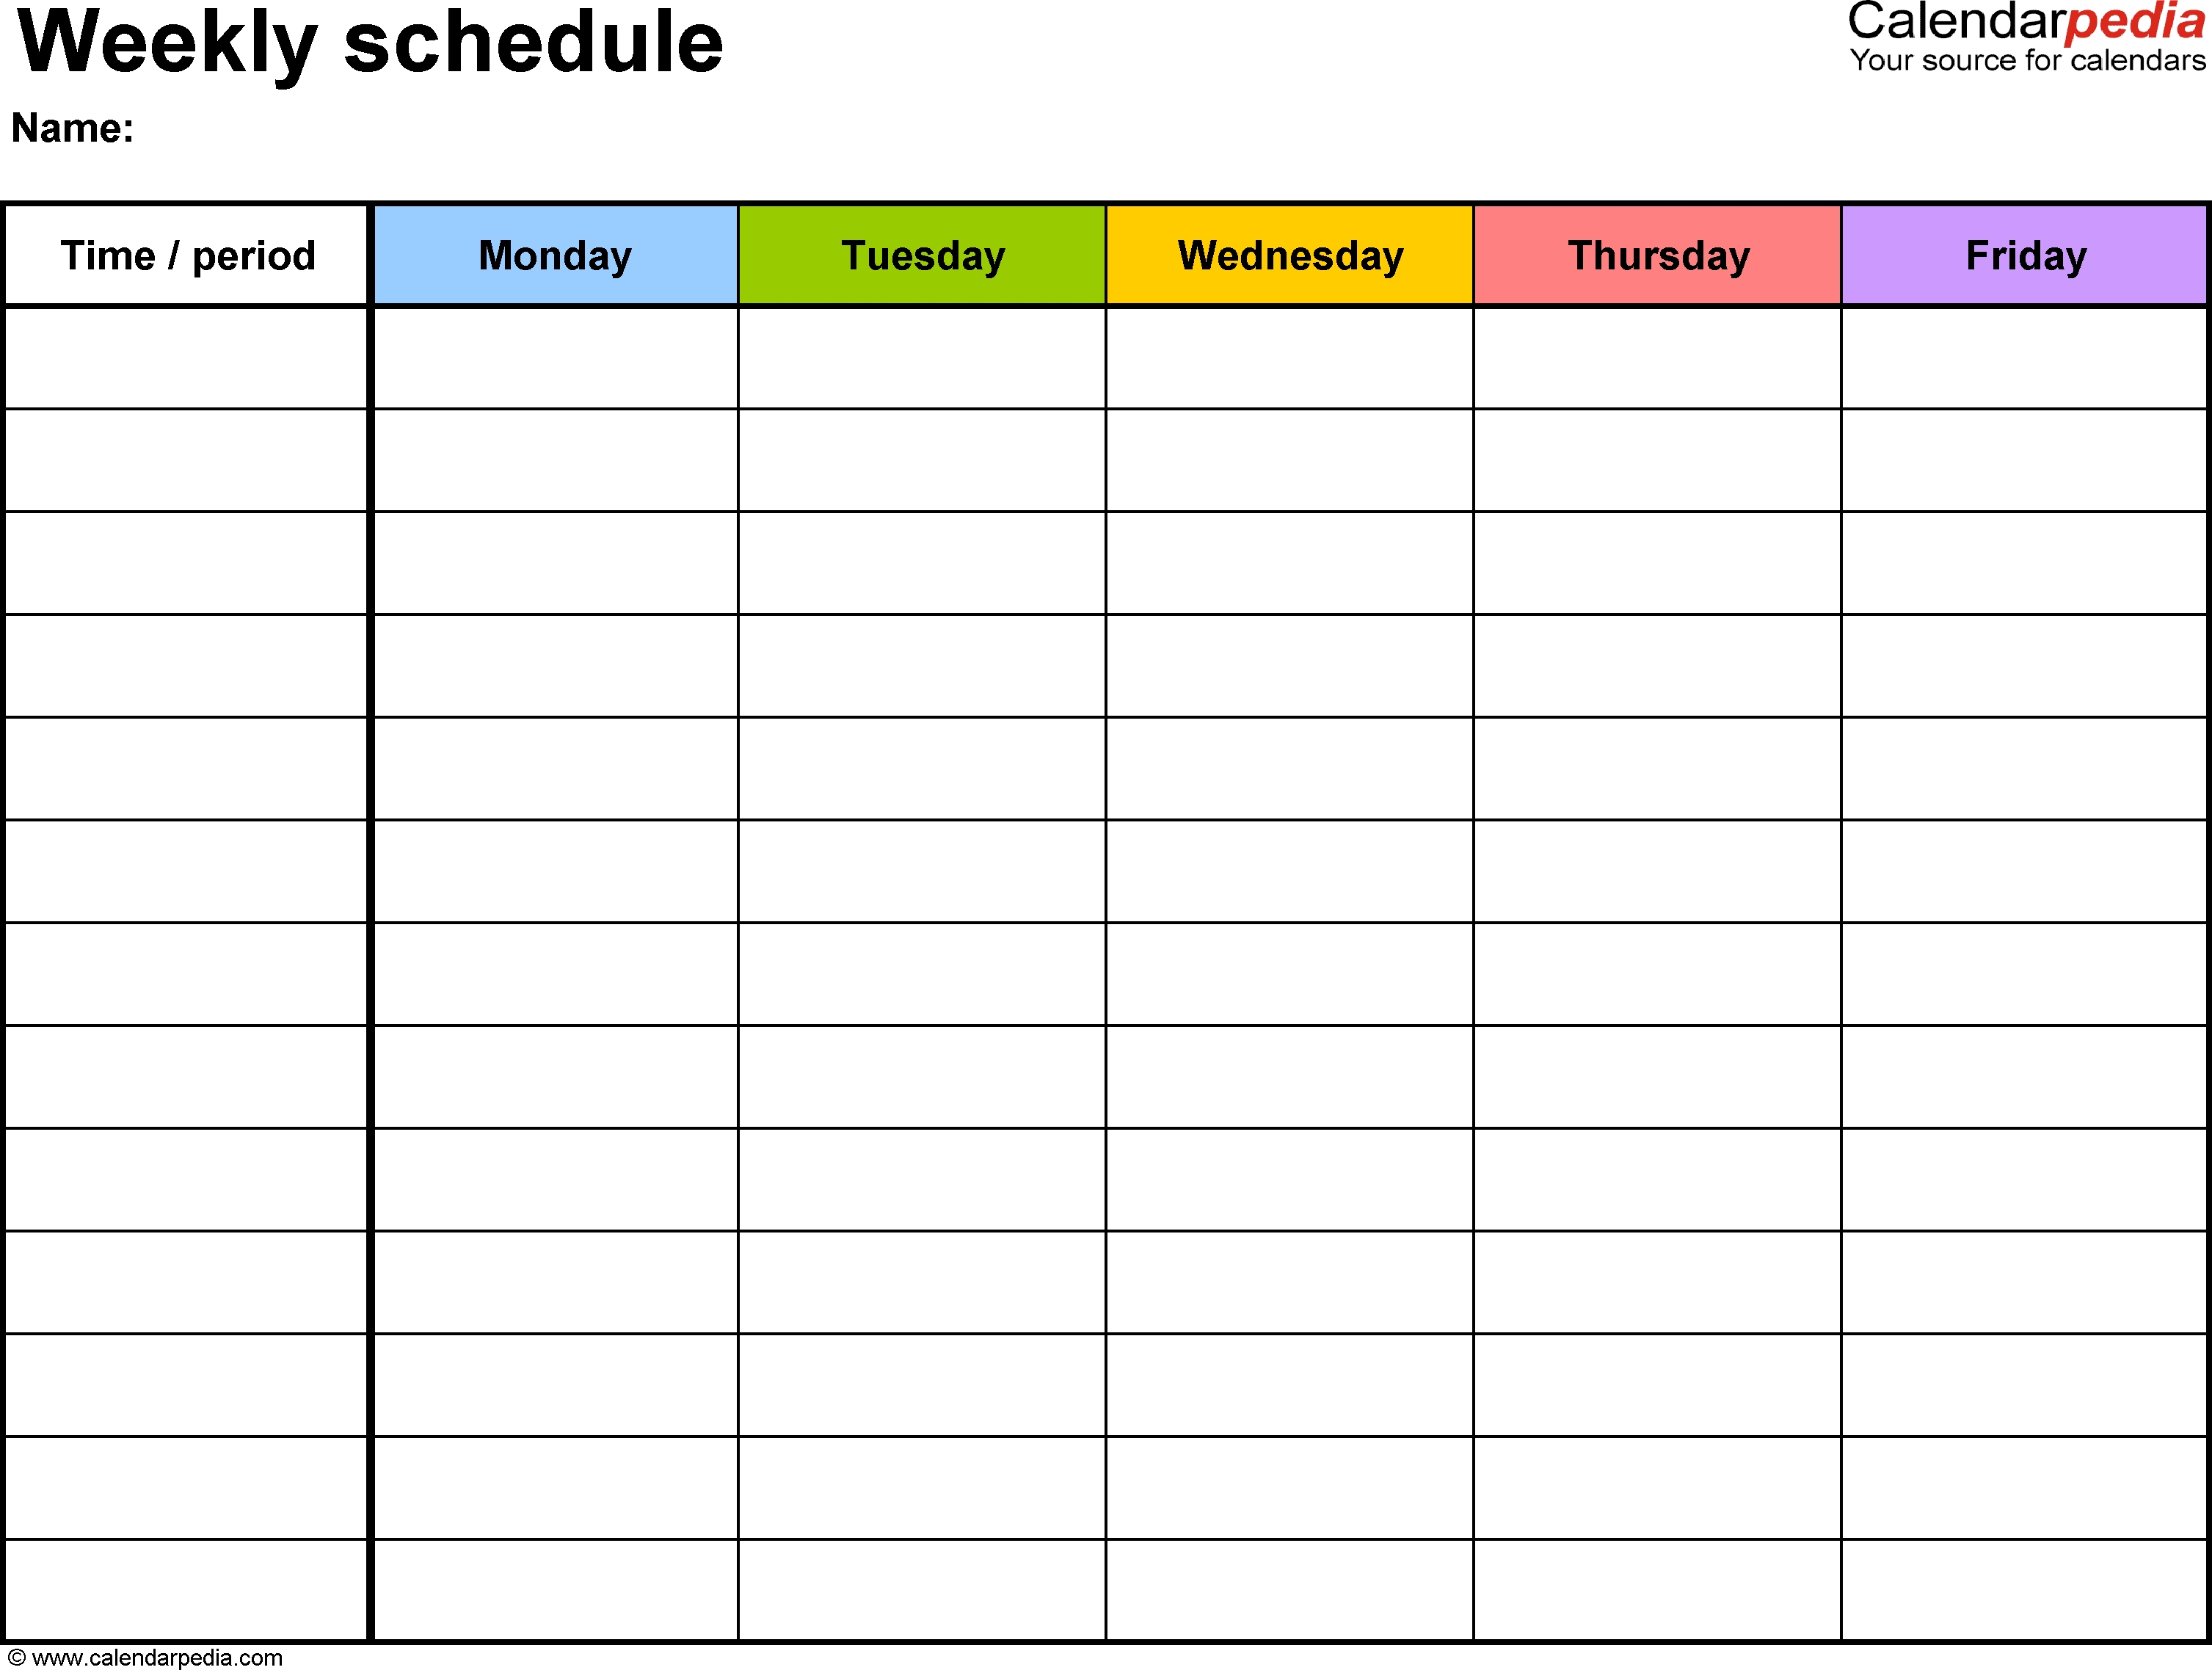 Free Weekly Schedule Templates For Word – 18 Templates Blank Weekly Planner Template Monday Thru Friday